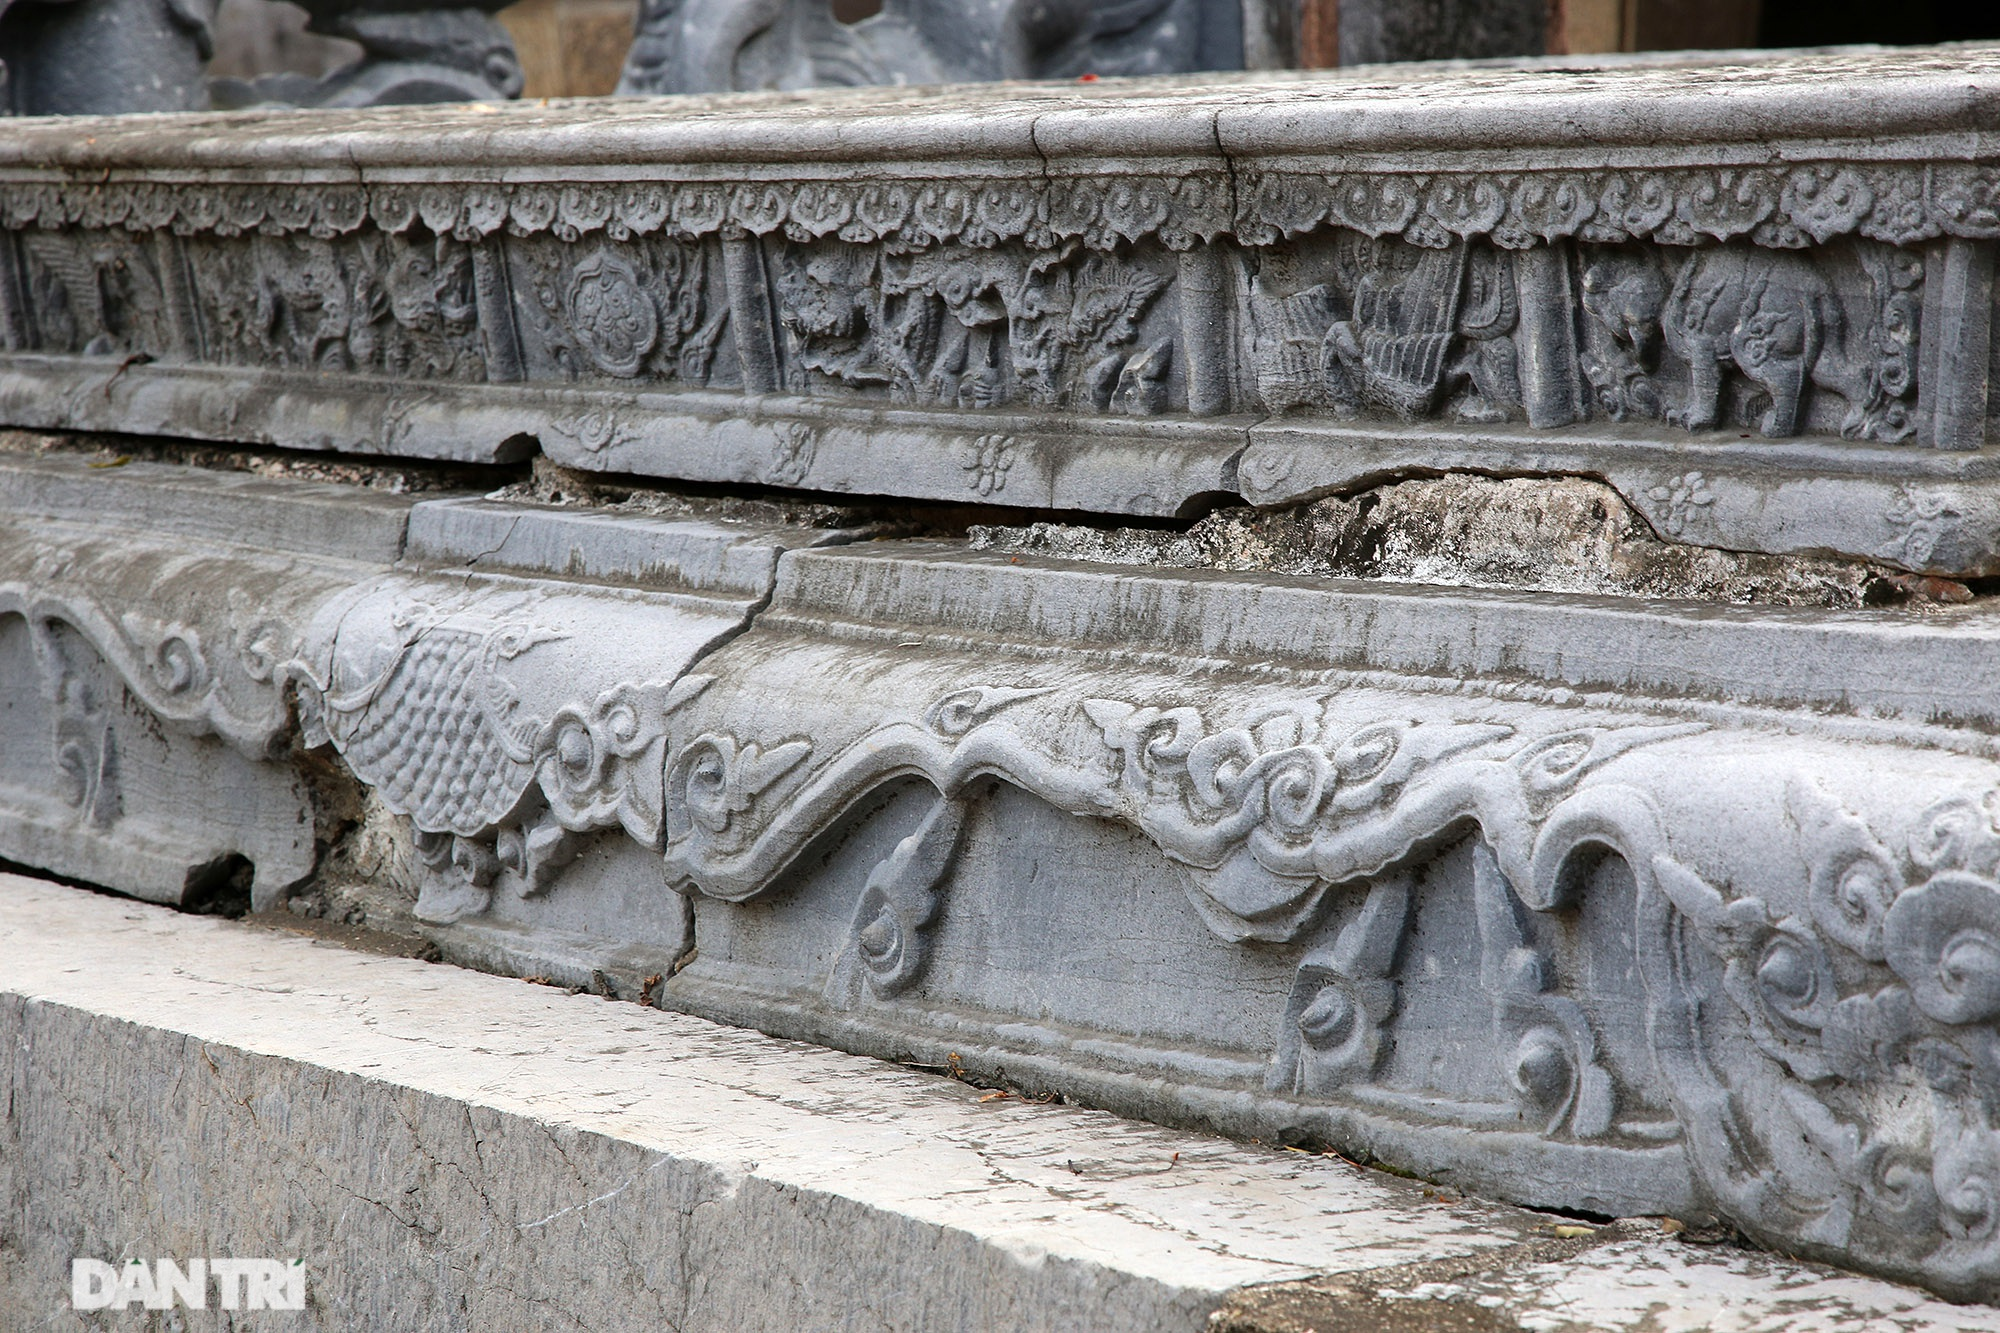 The unique stone sieve in Vietnam carved with the image of a buffalo, a mouse compared with a dragon - 14